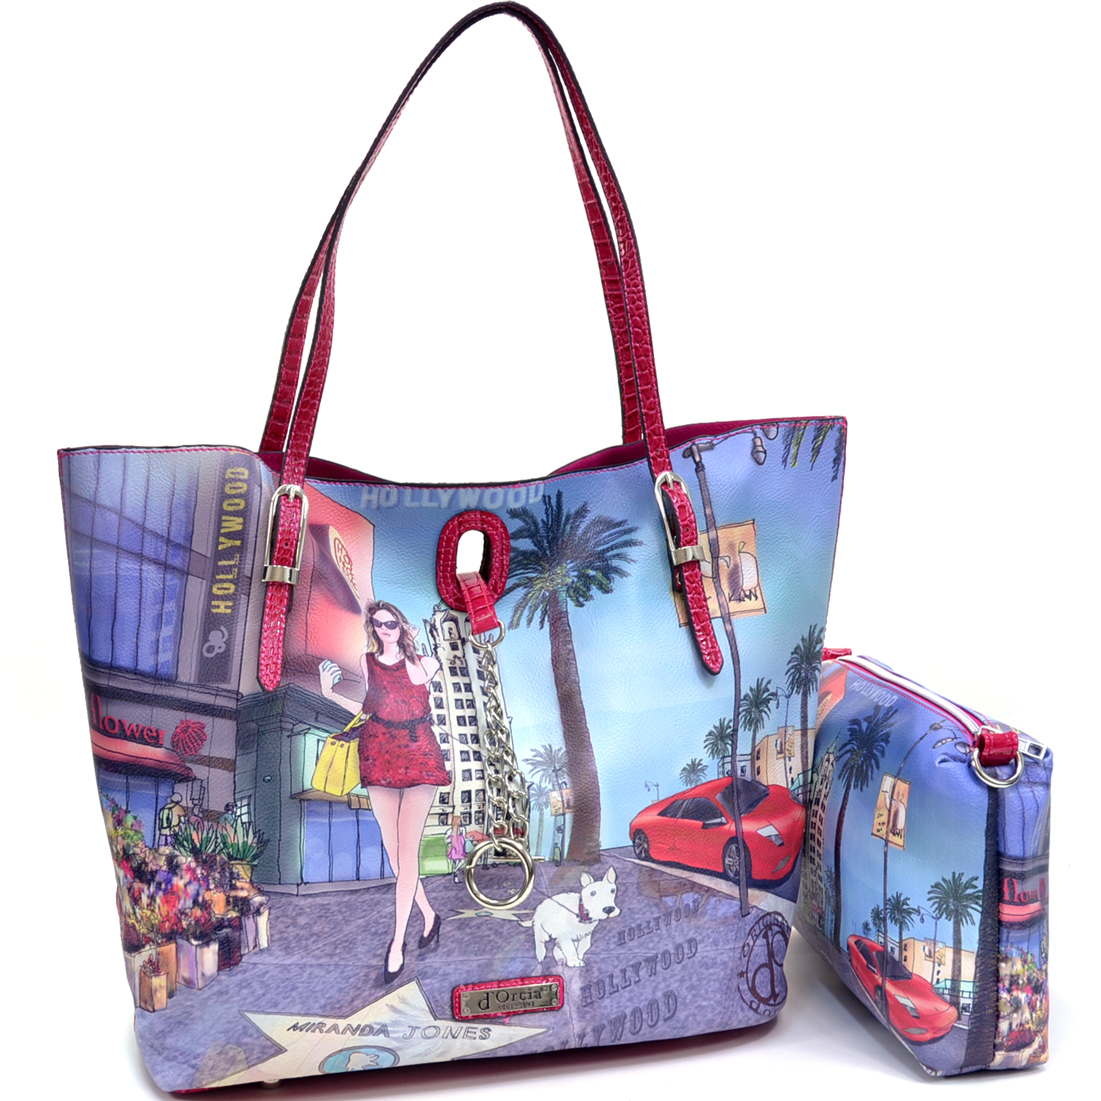 2 in 1 Hollywood Print Flat Bottom Tote w/Buckle Straps and Chain Lock